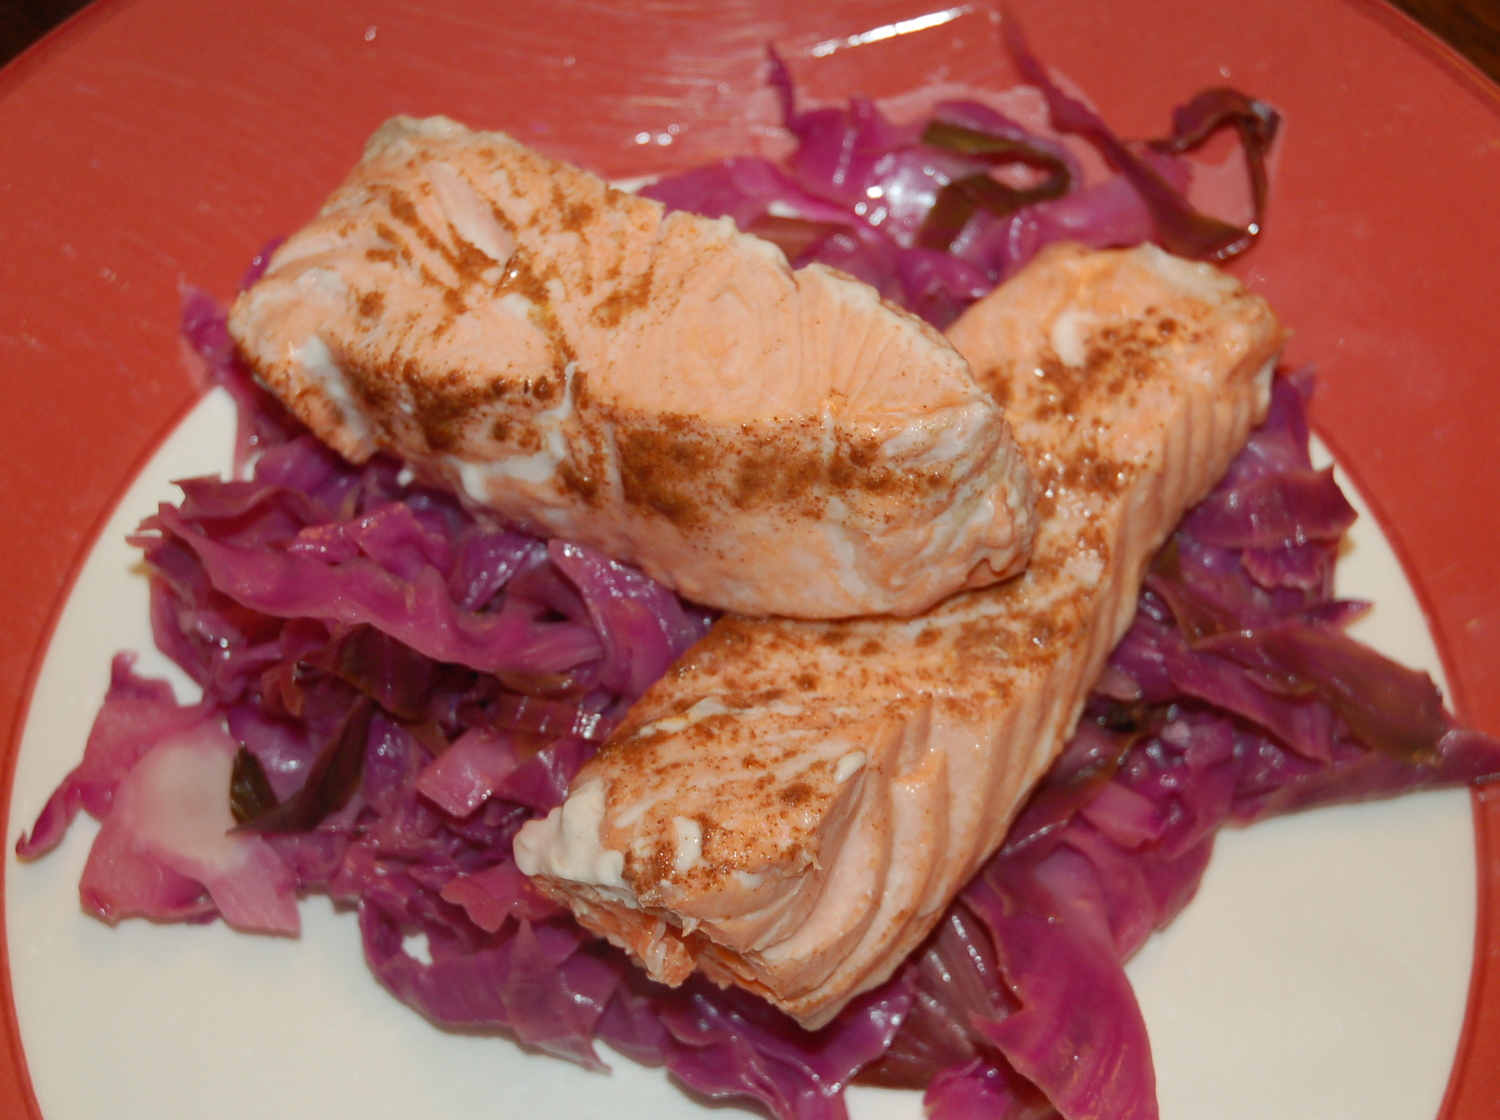 Braised Spiced Cabbage with Pan Roasted Salmon (if you want)